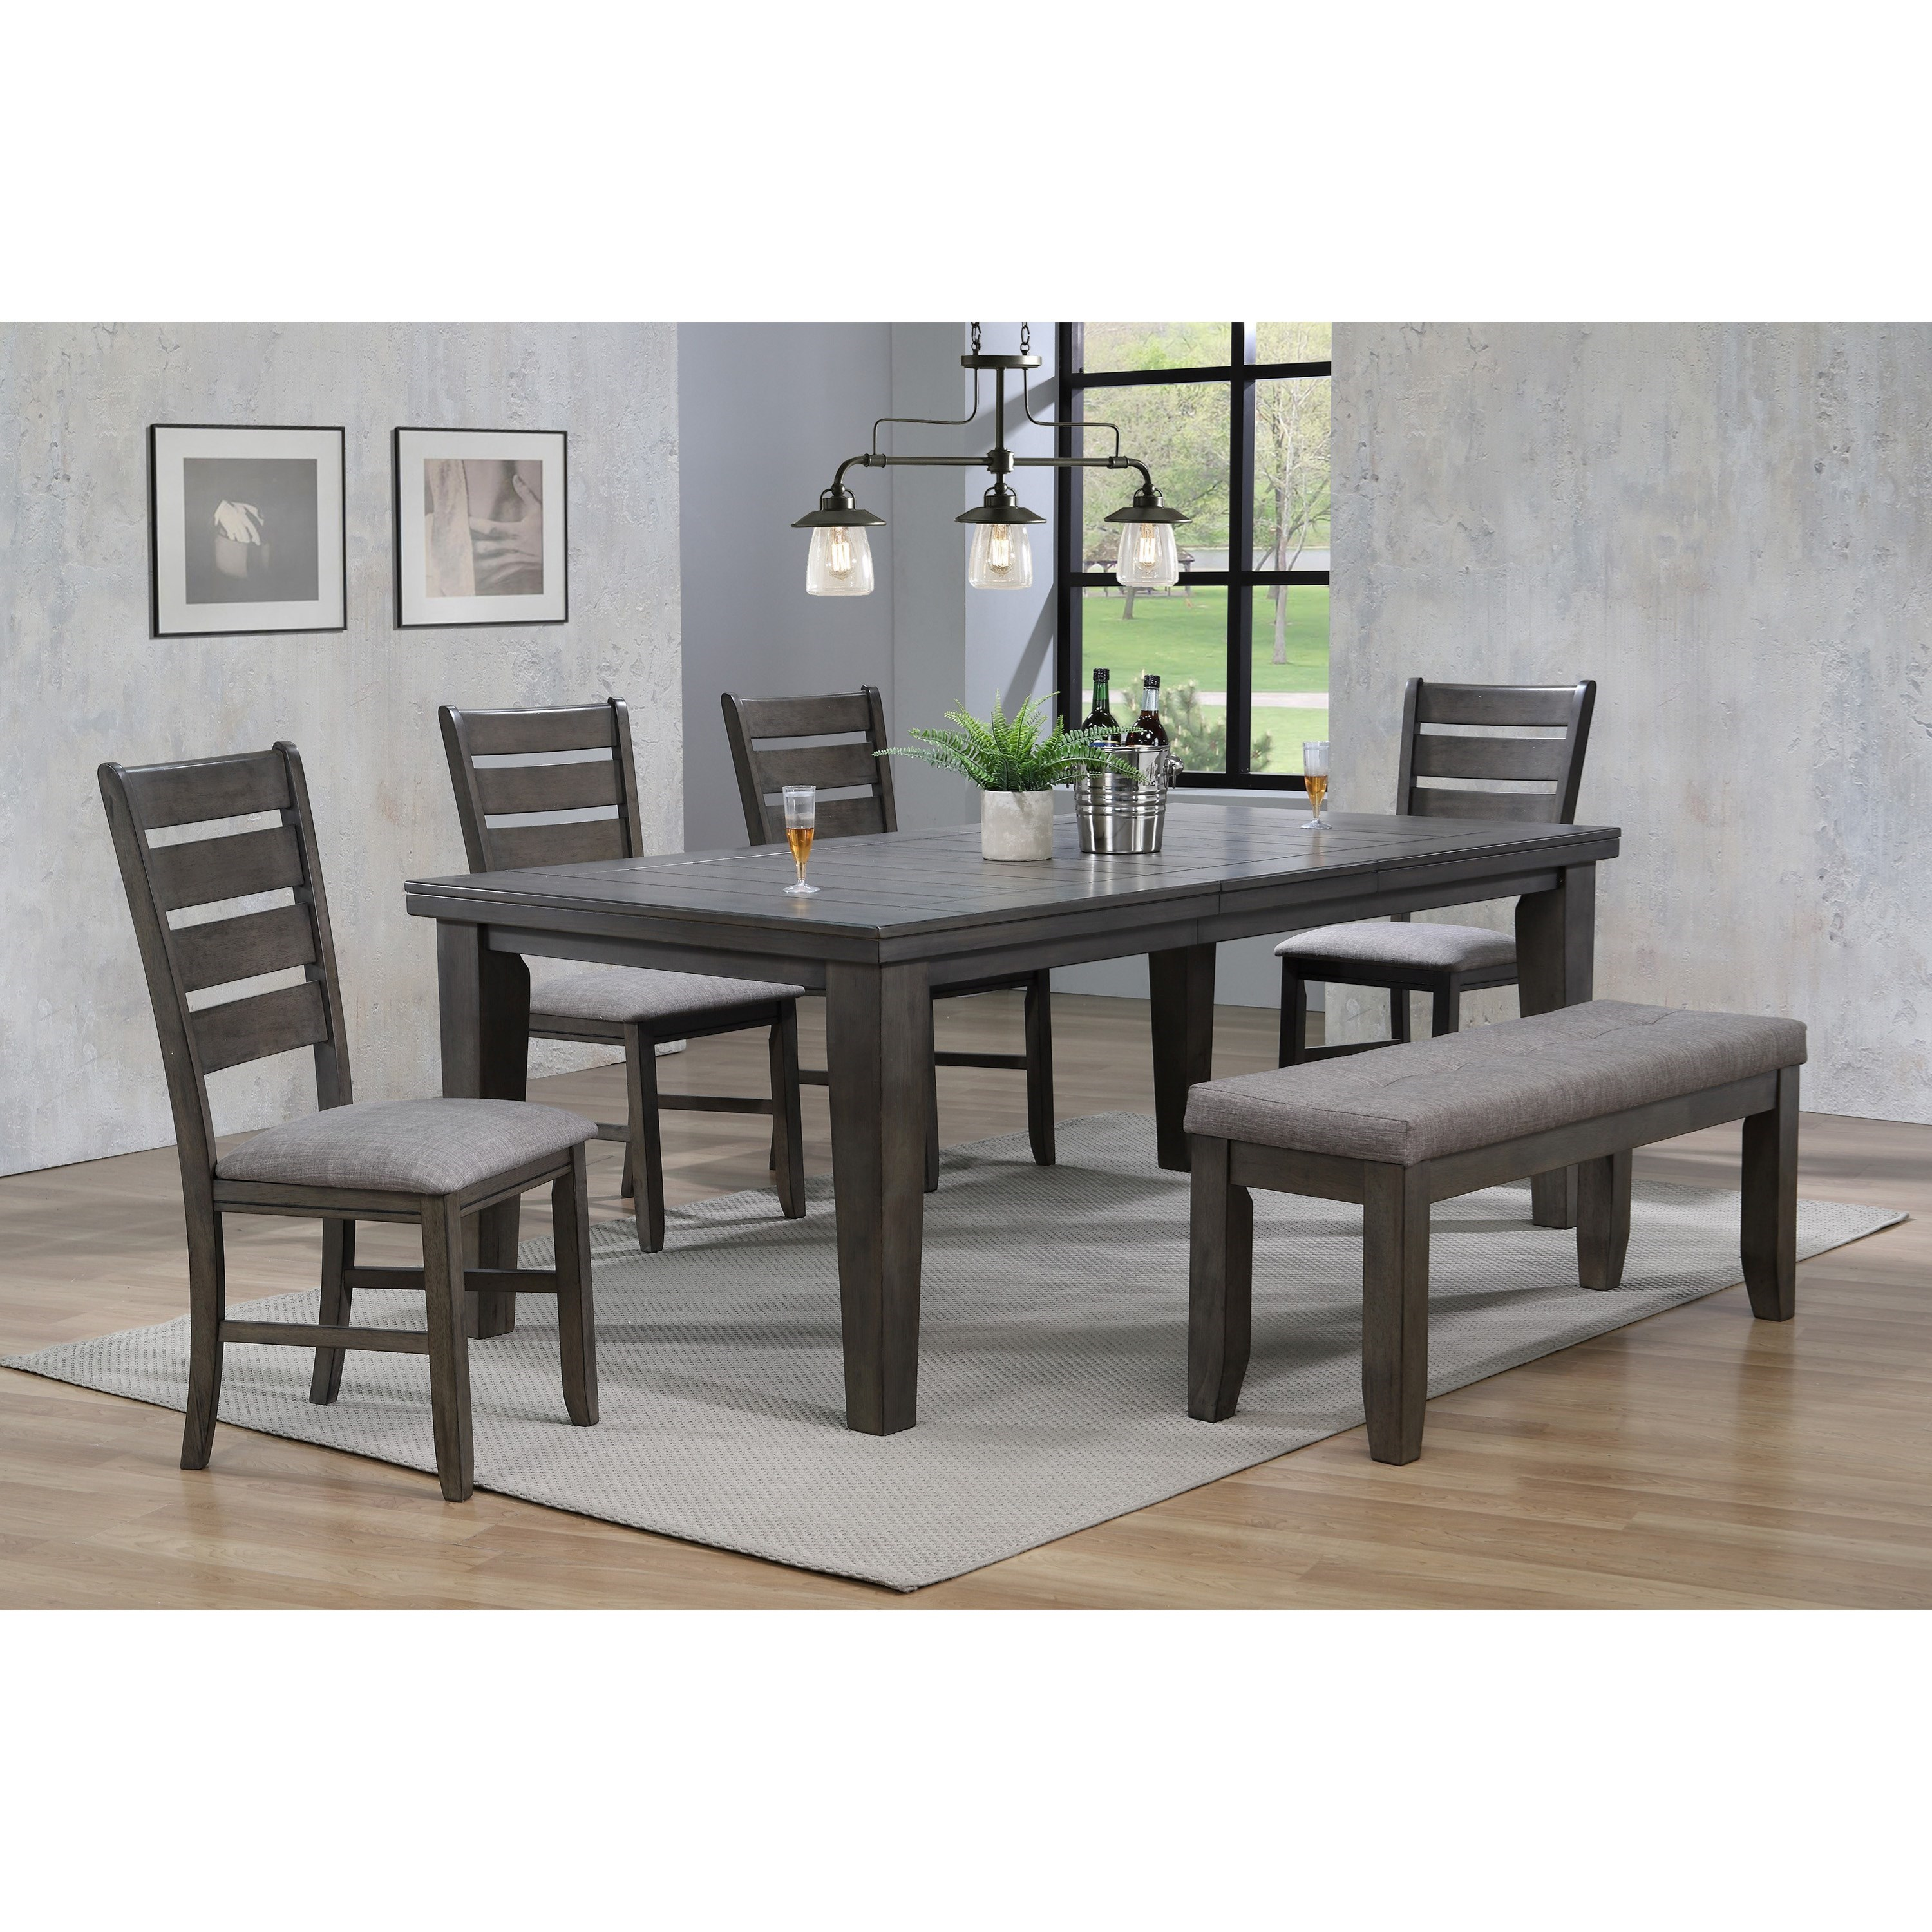 Admirable Bardstown 6 Piece Dining Set W 4 Chairs Bench Gmtry Best Dining Table And Chair Ideas Images Gmtryco